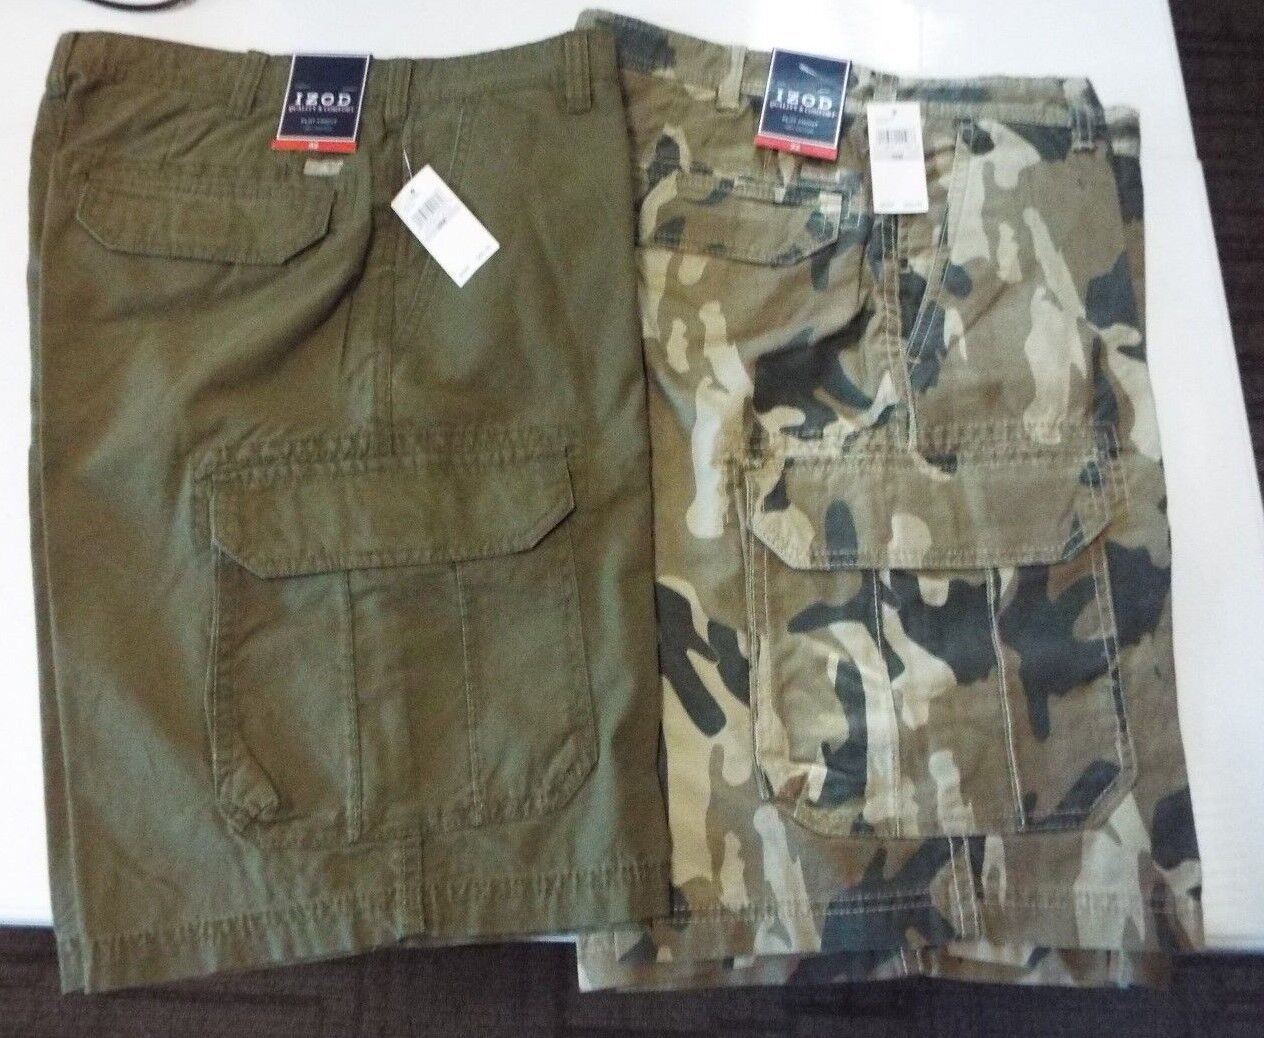 2 PAIR IZOD MEN,S CARGO SHORTS SIZE 32  MRSP  EACH  NWT FREE SHIPPING